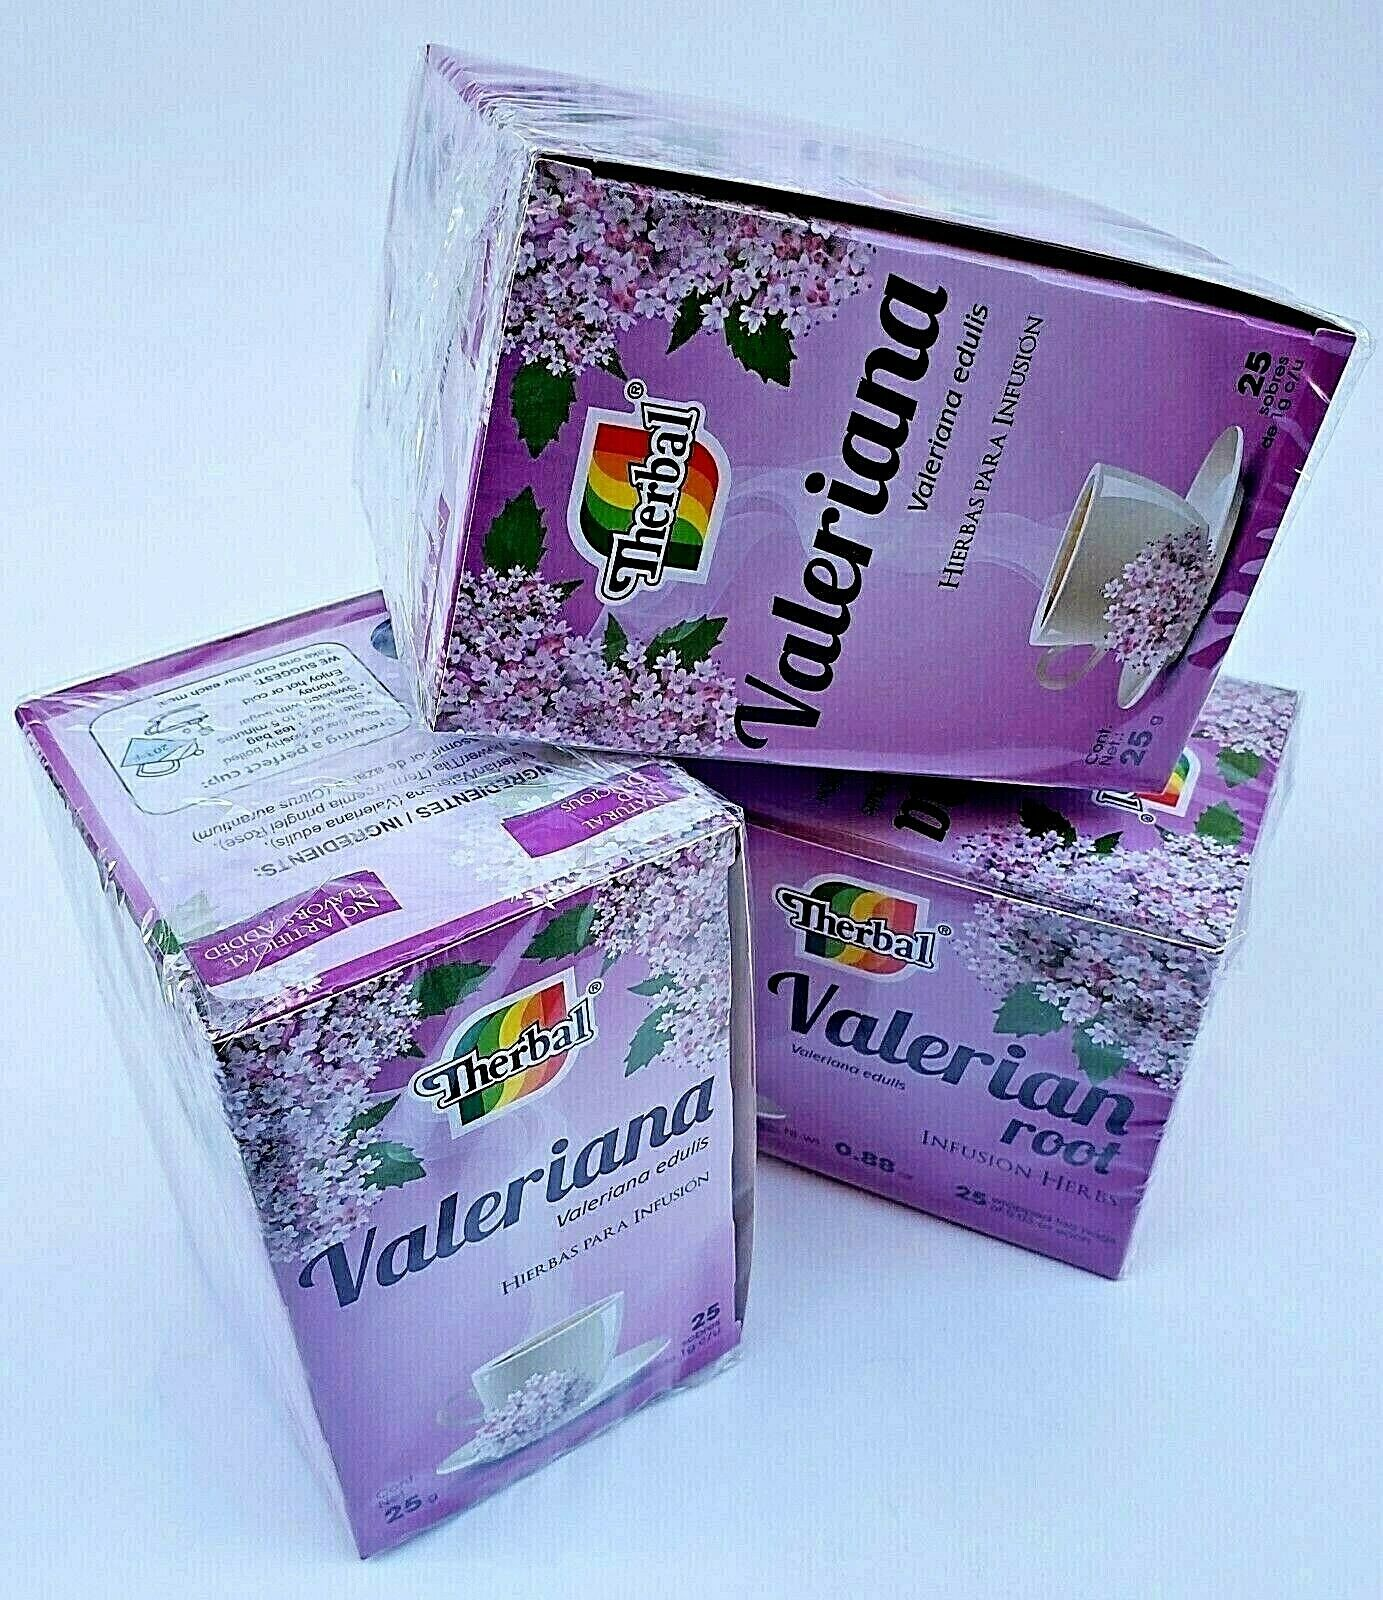 (3 Packs) VALERIAN TEA 75 BAGS 1 g. ea TE DE VALERIANA Therbal Made in Mexico 1